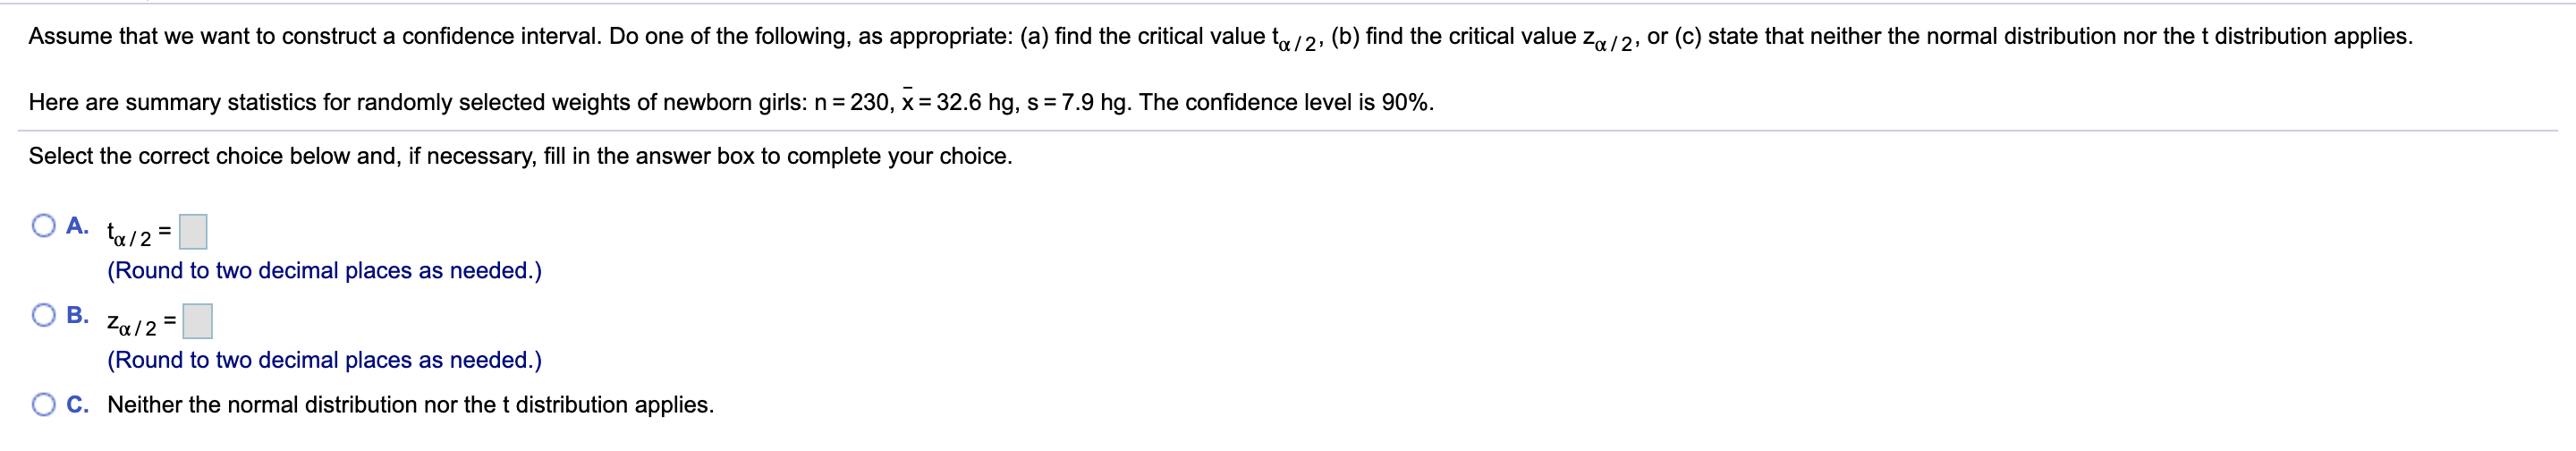 Assume that we want to construct a confidence interval. Do one of the following, as appropriate: (a) find the critical value t/2, (b) find the critical value z,/2, or (c) state that neither the normal distribution nor the t distribution applies. 230, x 32.6 hg, s = 7.9 hg. The confidence level is 90% Here are summary statistics for randomly selected weights of newborn girls: n Select the correct choice below and, if necessary, fill in the answer box to complete your choice. A. (Round to two decimal places as needed.) В. Za/2 (Round to two decimal places as needed.) C. Neither the normal distribution nor the t distribution applies.